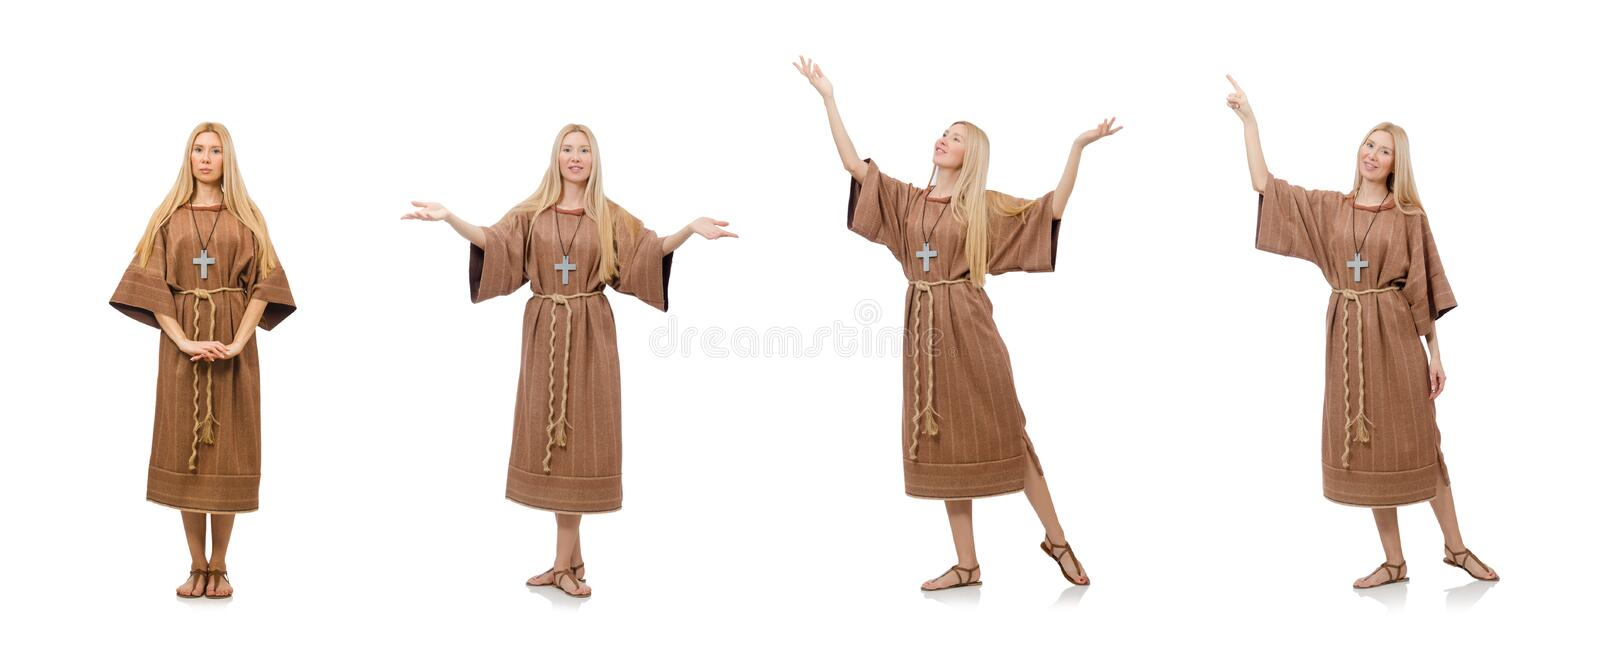 Christian woman isolated on the white stock photography